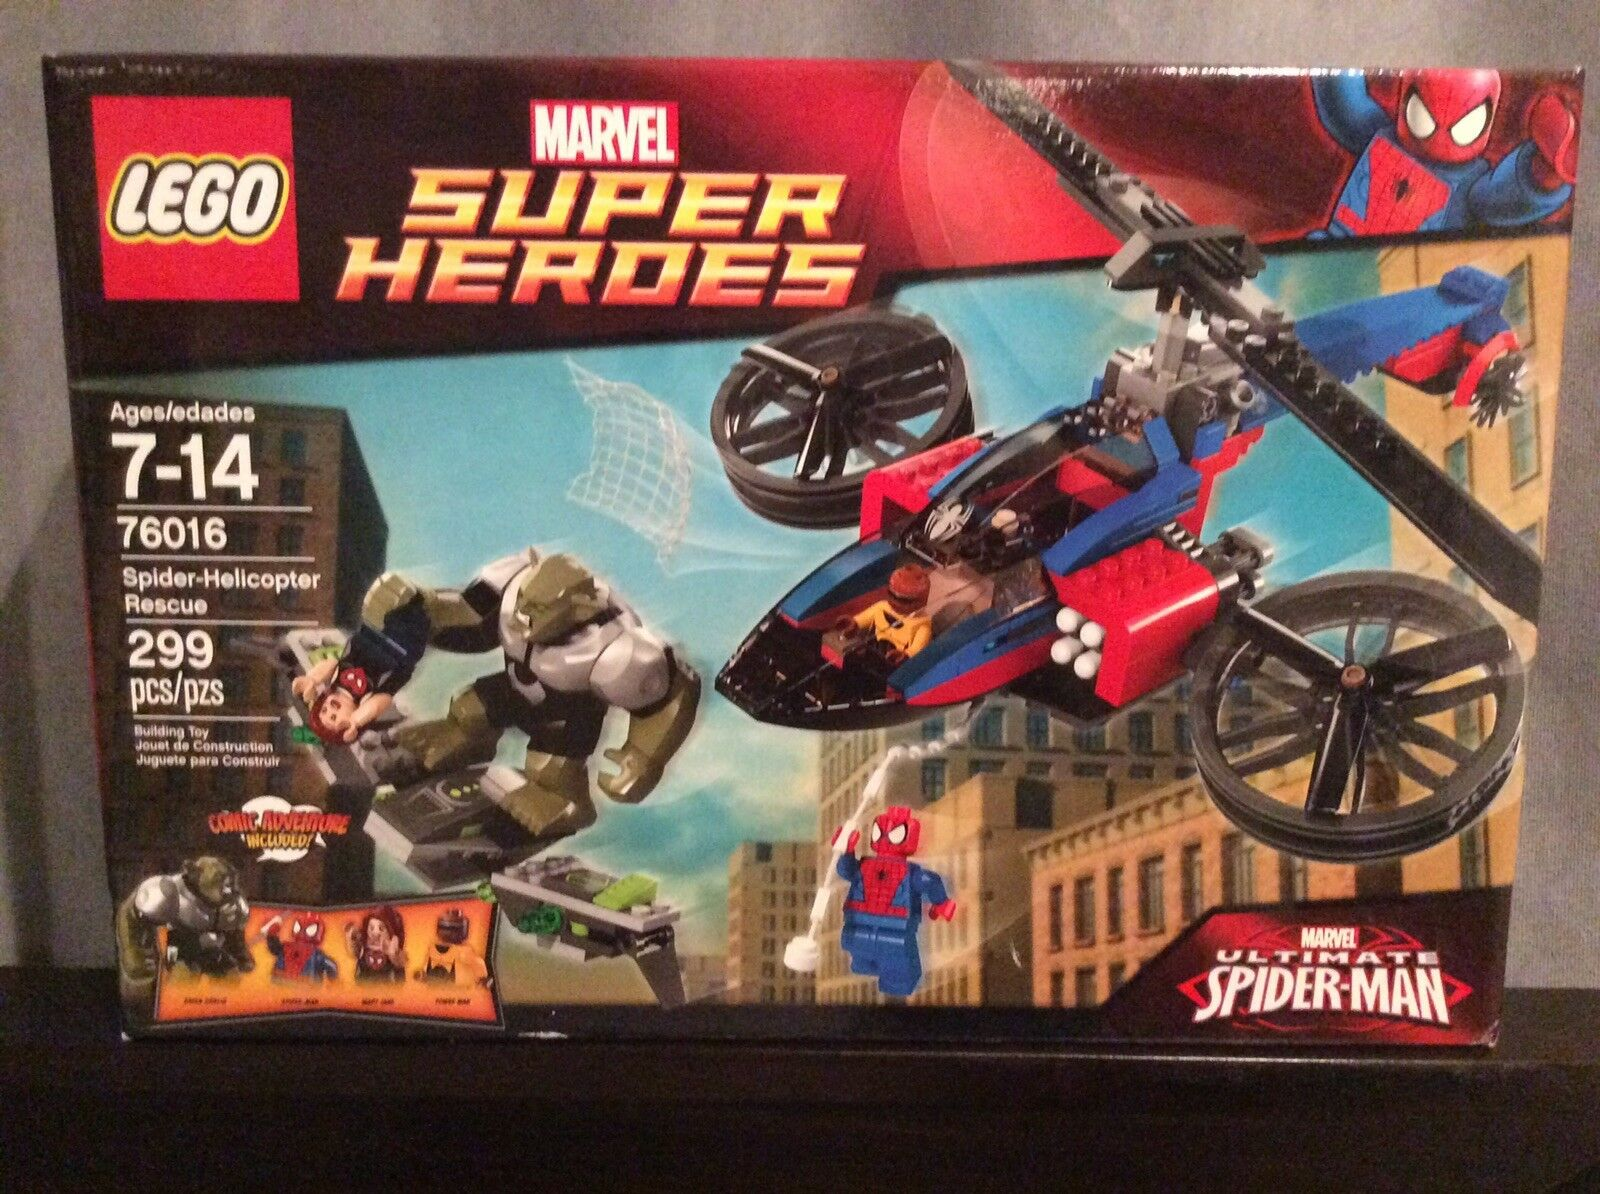 LEGO MARVEL SUPER HEROES 76016 Spider-Helicopter Rescue Green Goblin Spider-Man